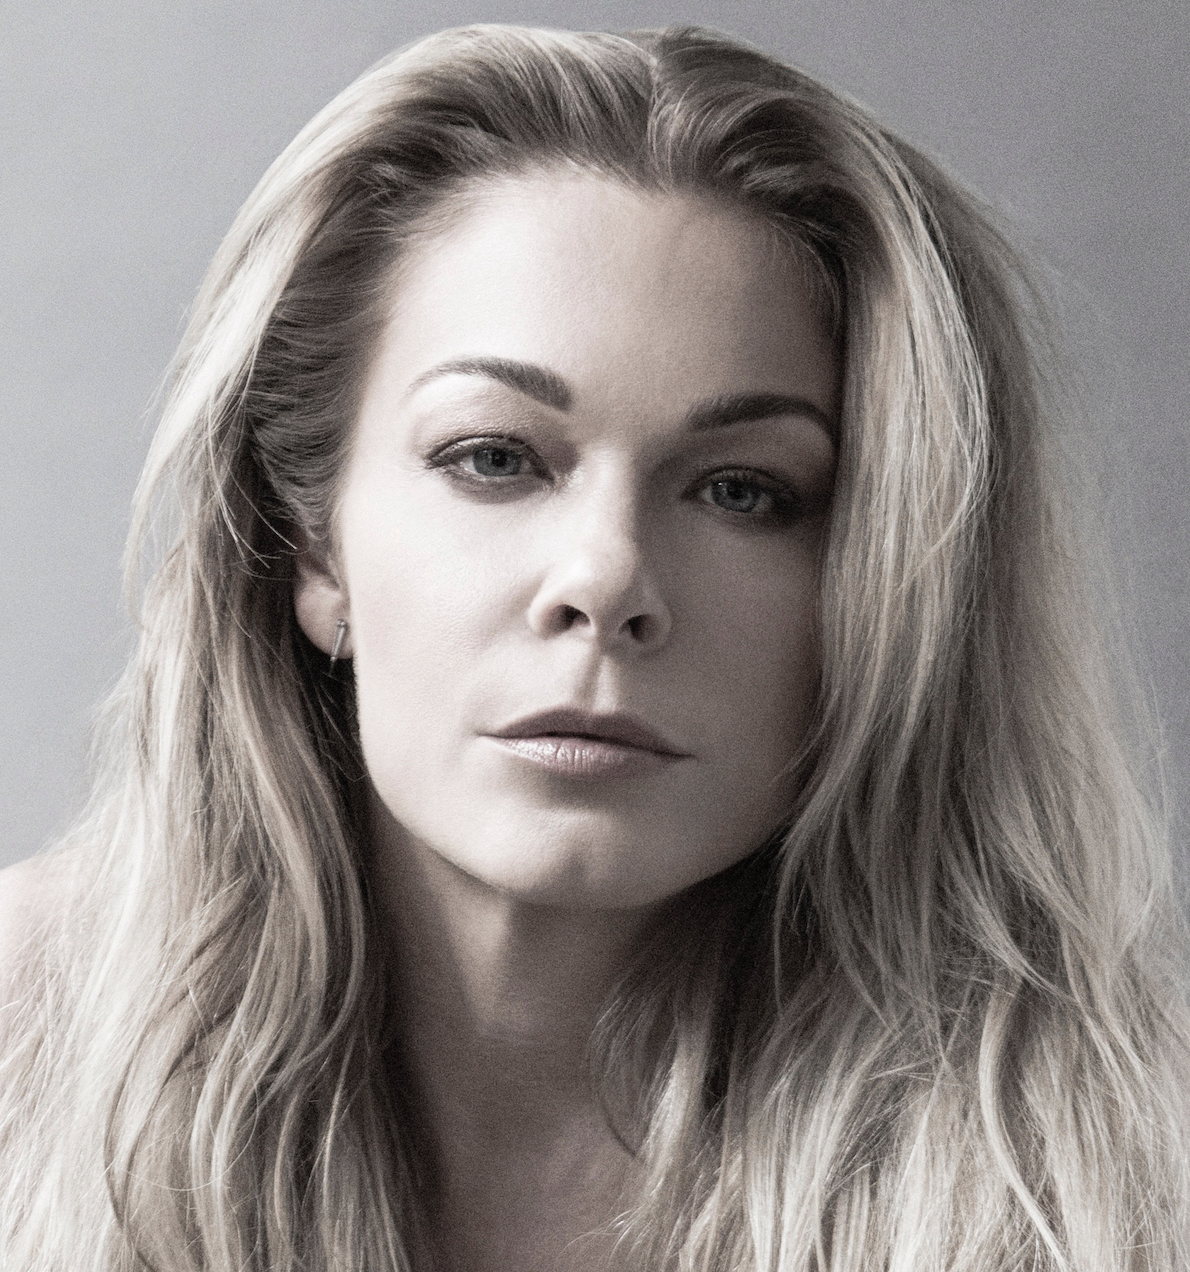 LeAnn Rimes Concert Rescheduled to November 5th